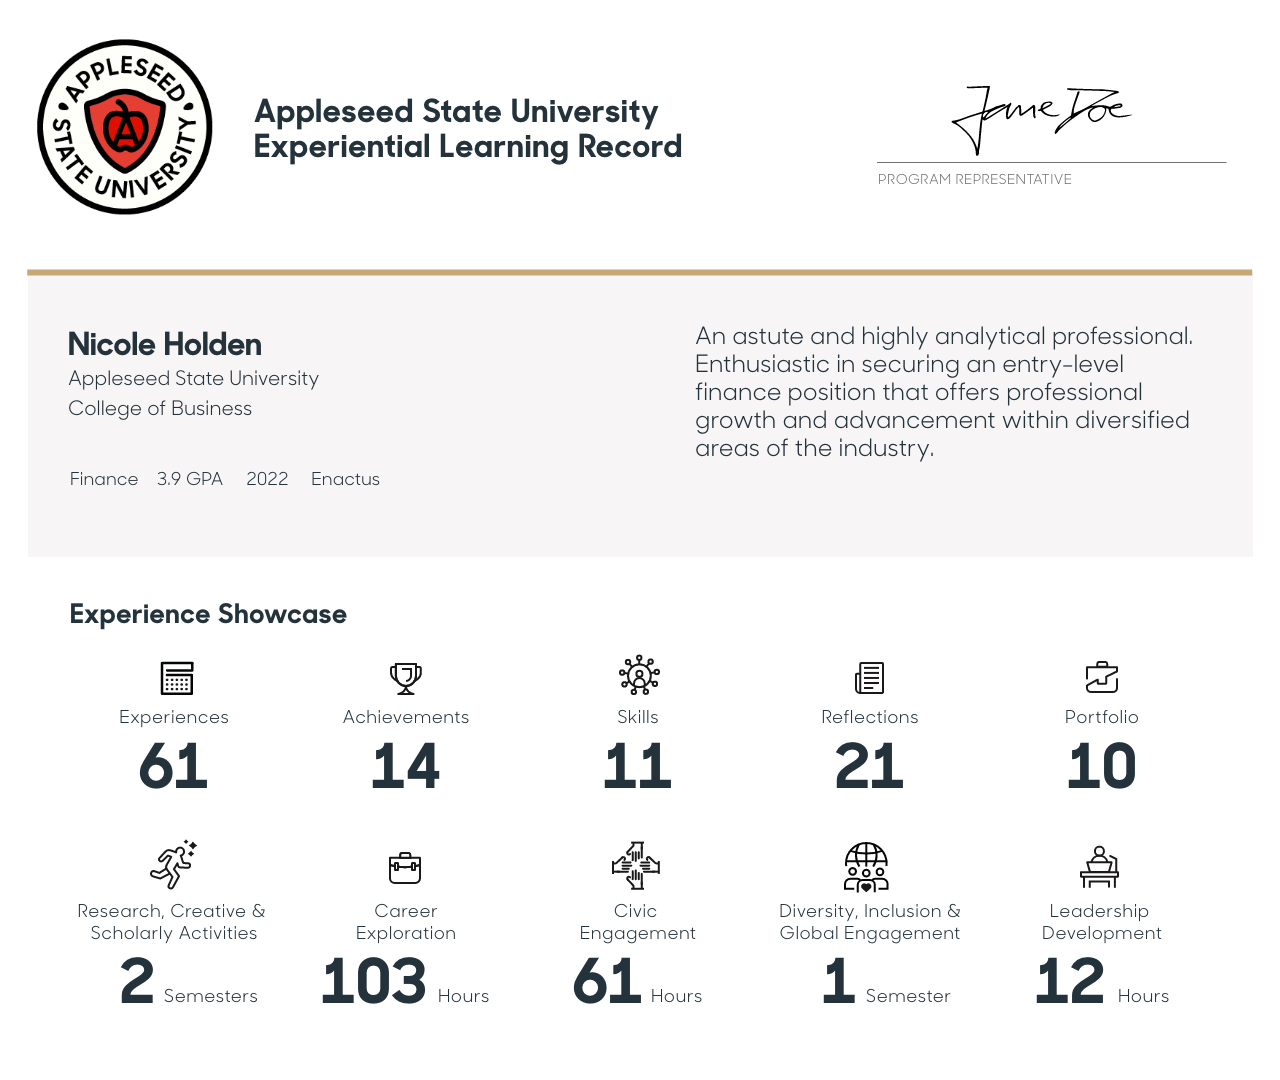 01_Suitable_Experiential Learning Record_Showcase